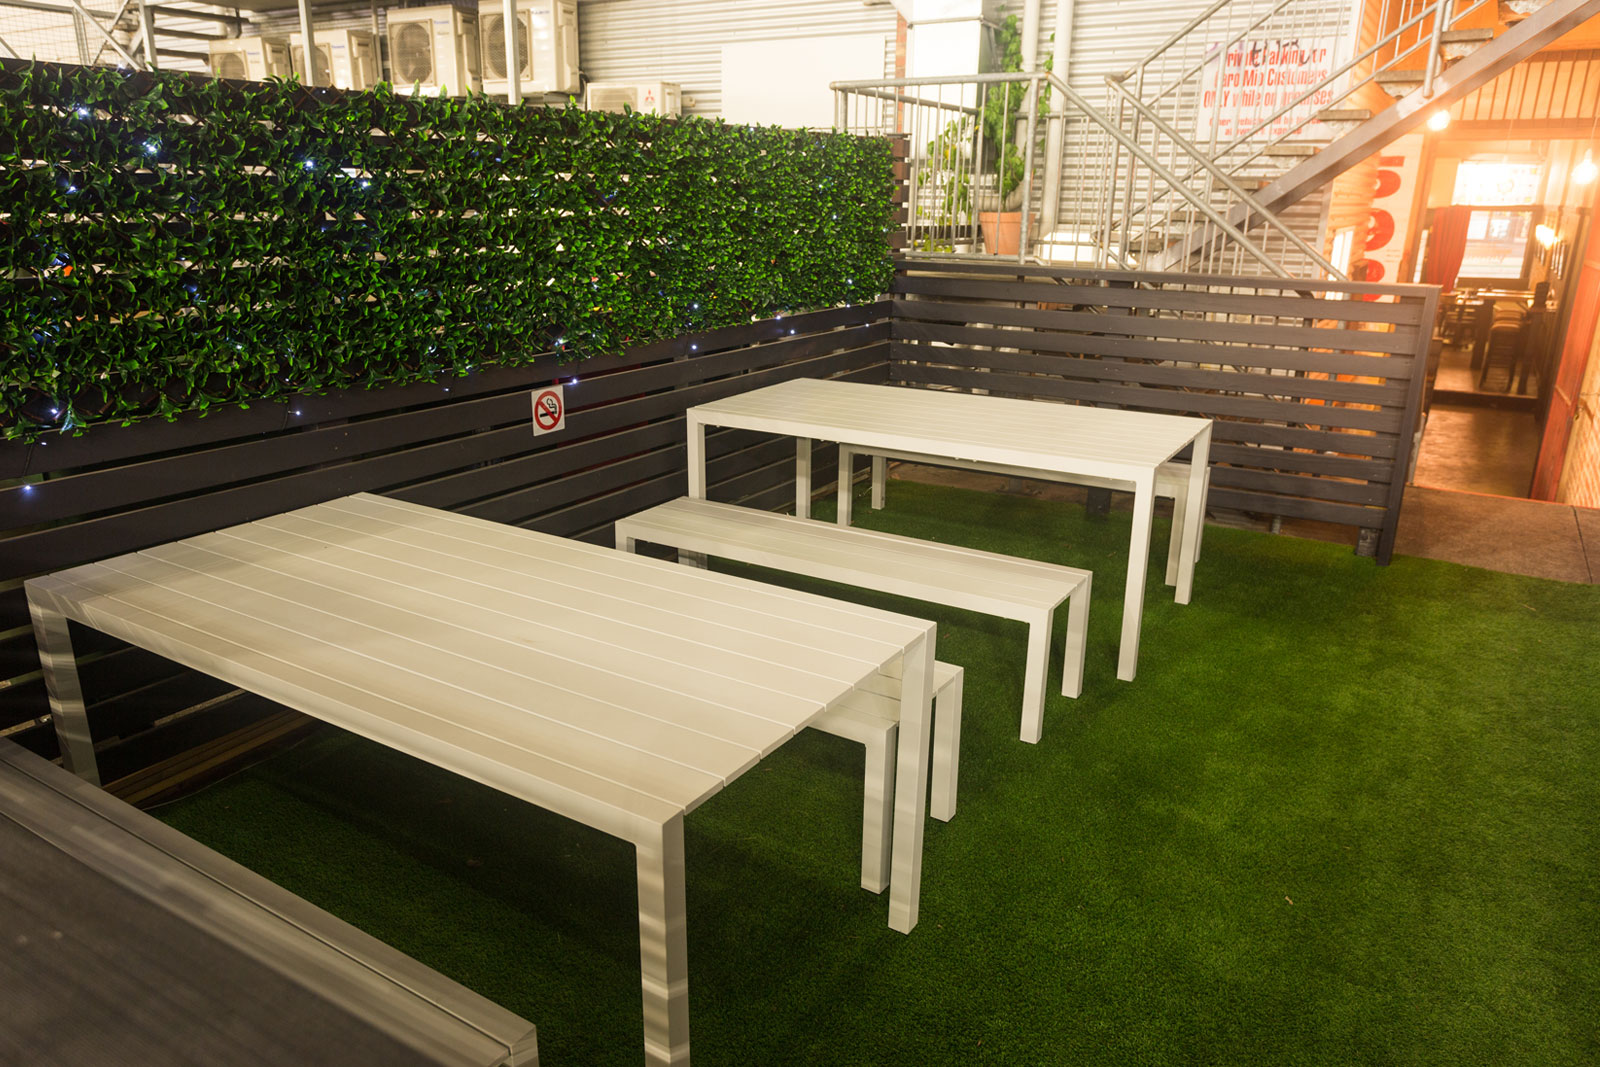 Outdoor seating and tables